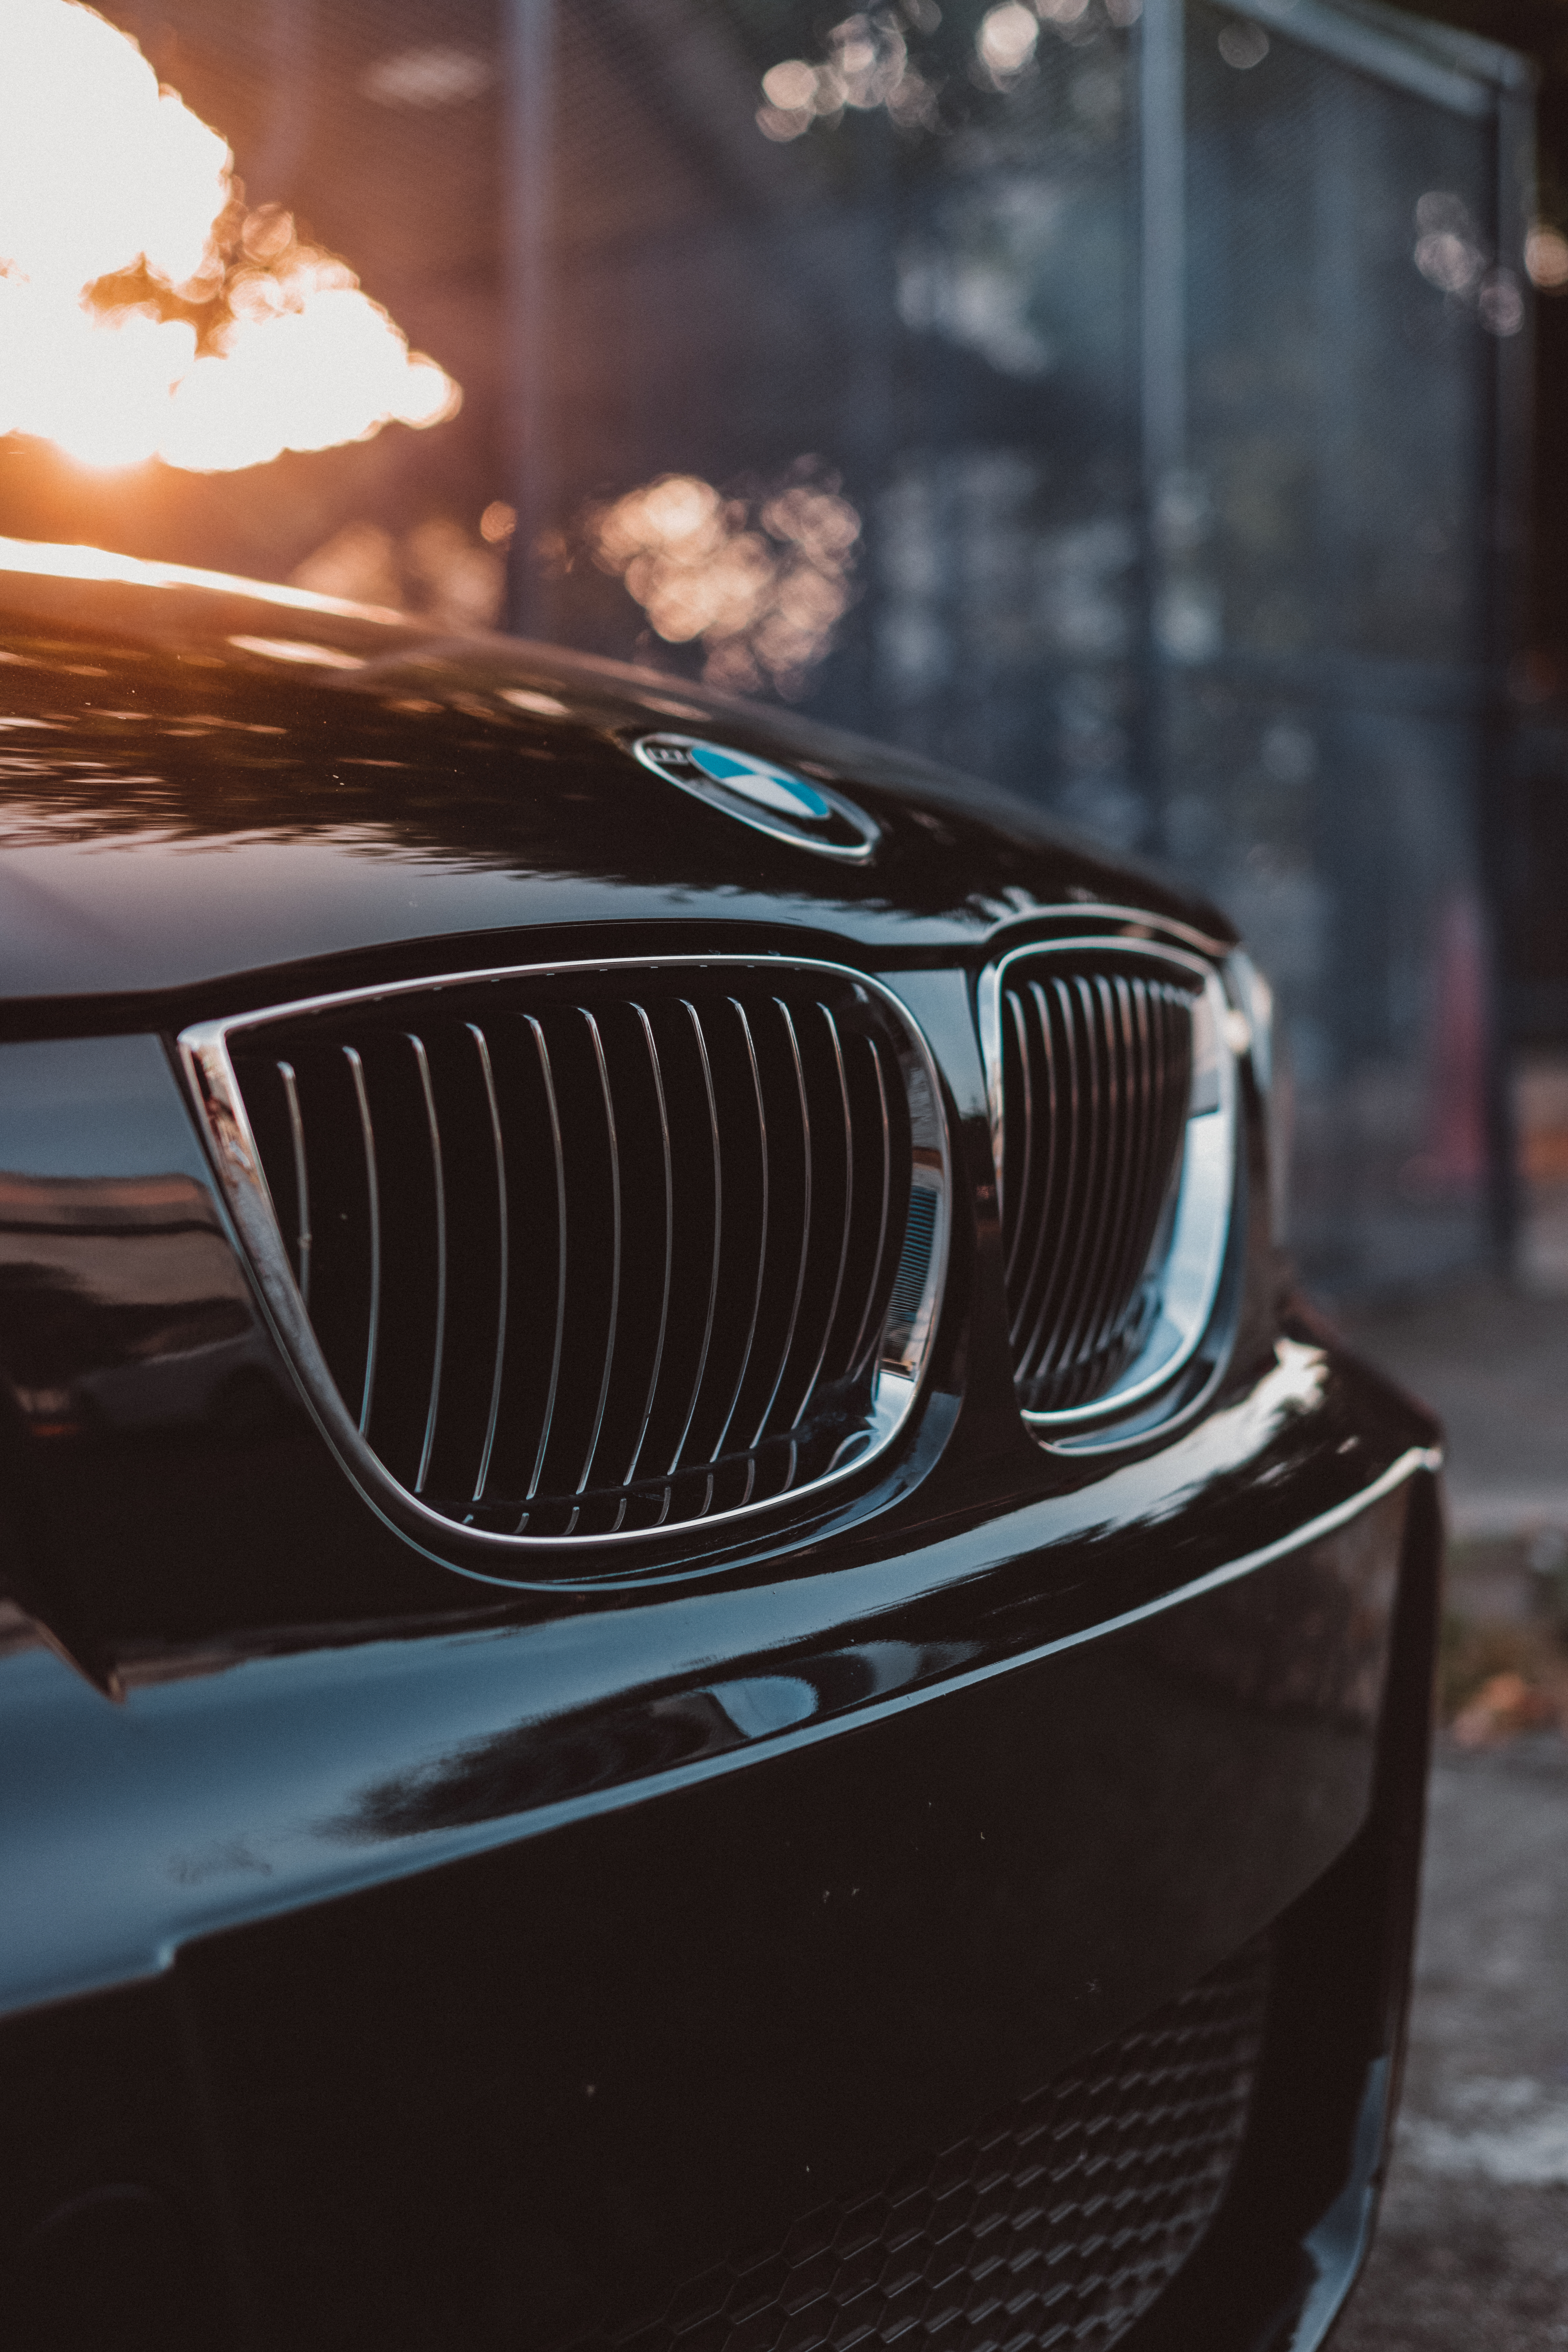 Black Bmw Car In Close Up Photography Free Stock Photo